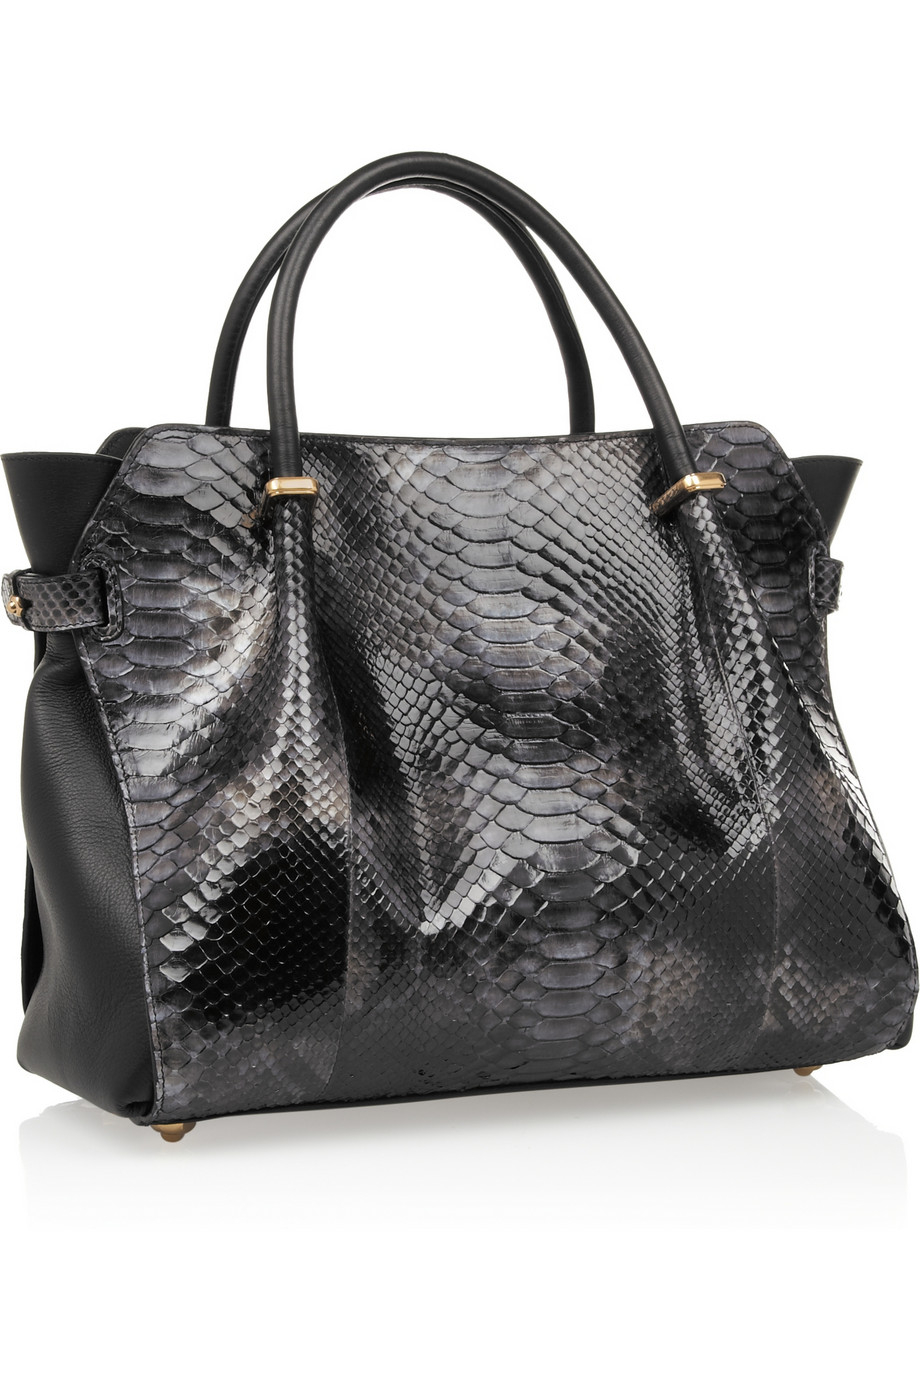 80eb1c048b Nina Ricci Marché Small Python and Leather Tote in Black - Lyst